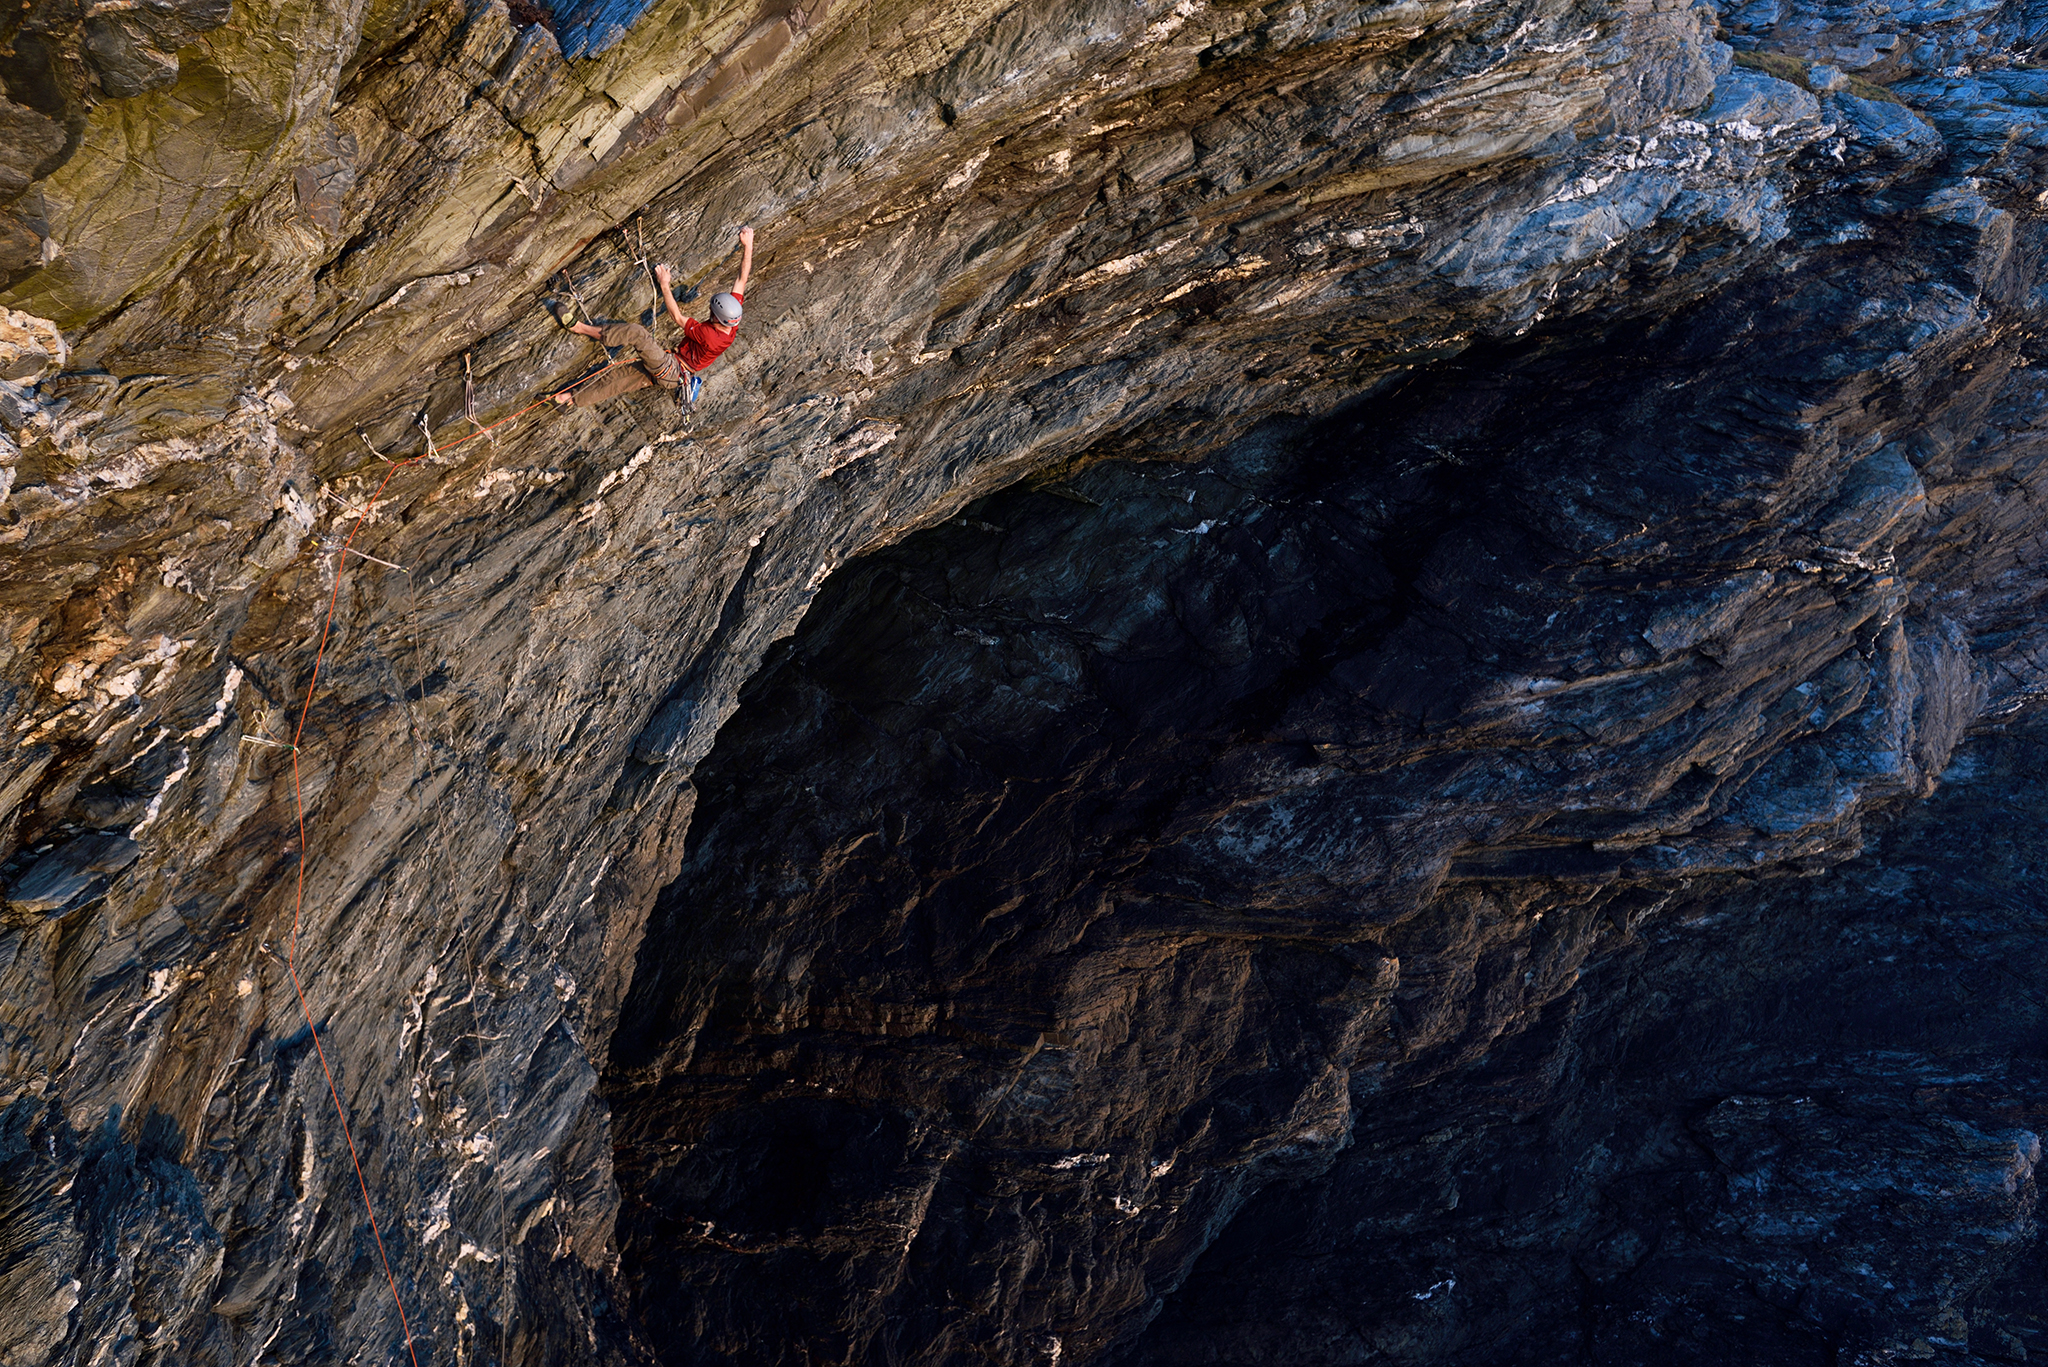 James McHaffie on the first ascent of  Nightmare Inauguration  (E8 6b) Porth Dafarch, Anglesey, North Wales.